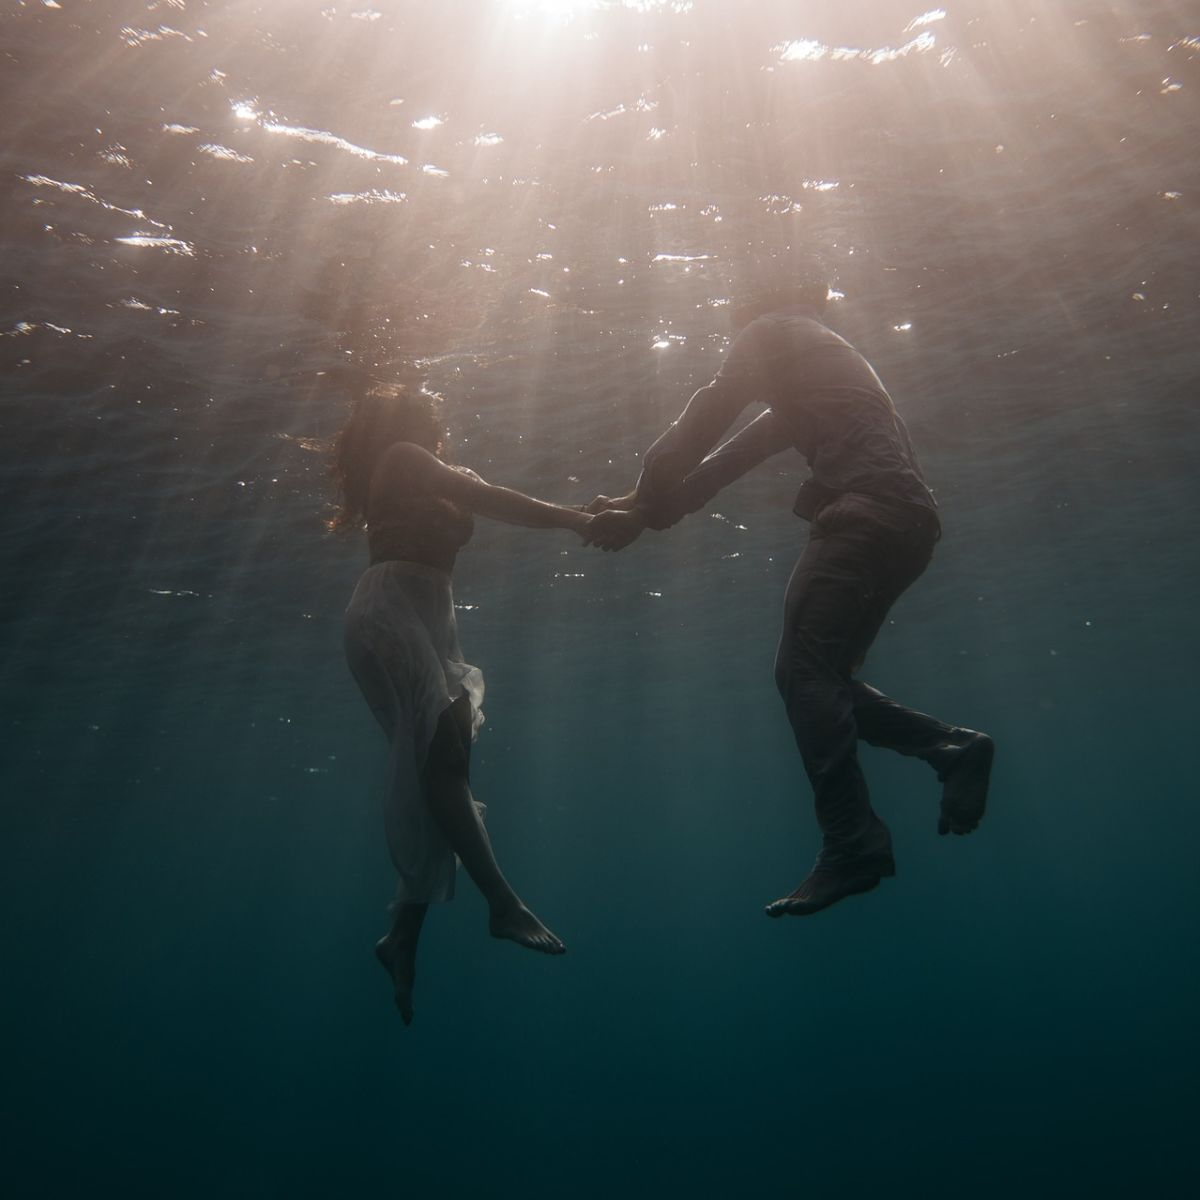 Couple swimming underwater in sea, lake